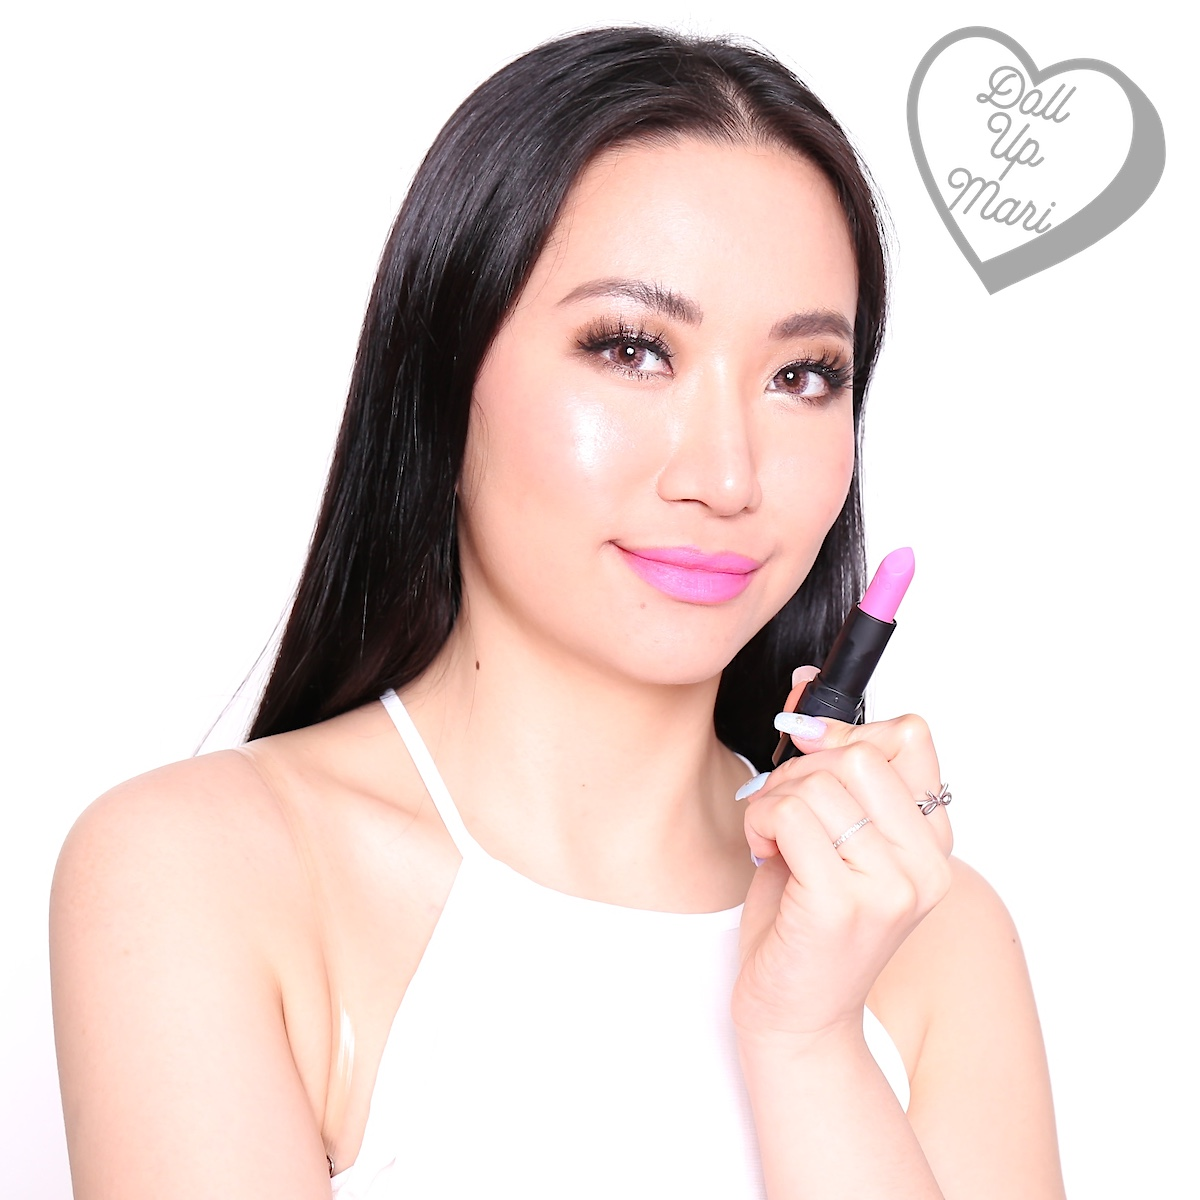 Wearing Electric Pink shade of AVON Perfectly Matte Lipstick